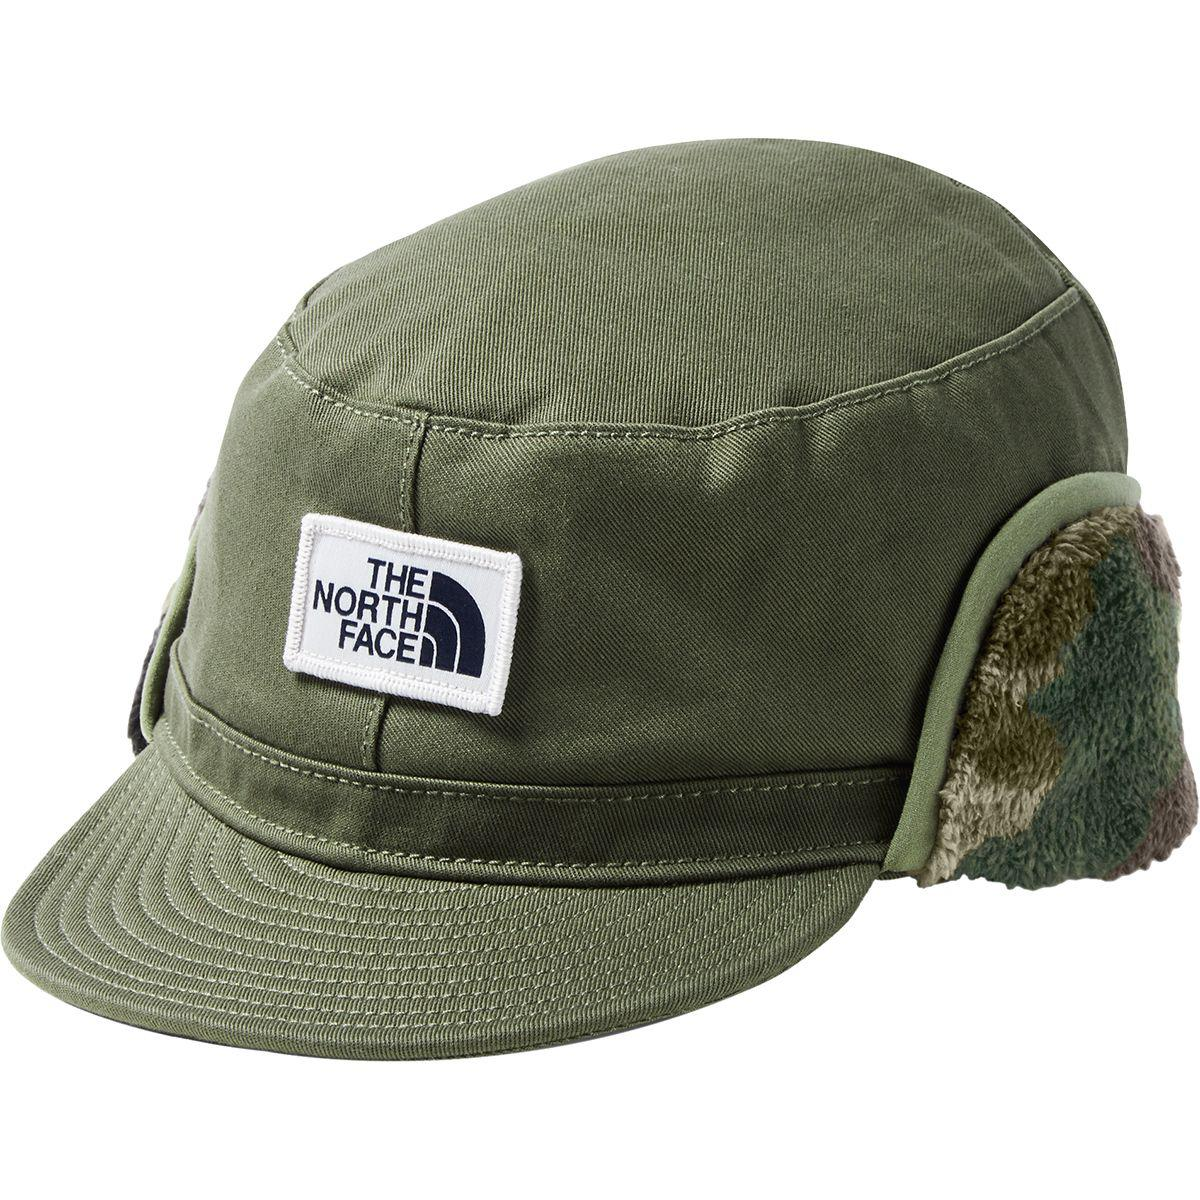 Lyst - The North Face Campshire Earflap Cap in Green for Men - Save 34% 1271f44a0b4e